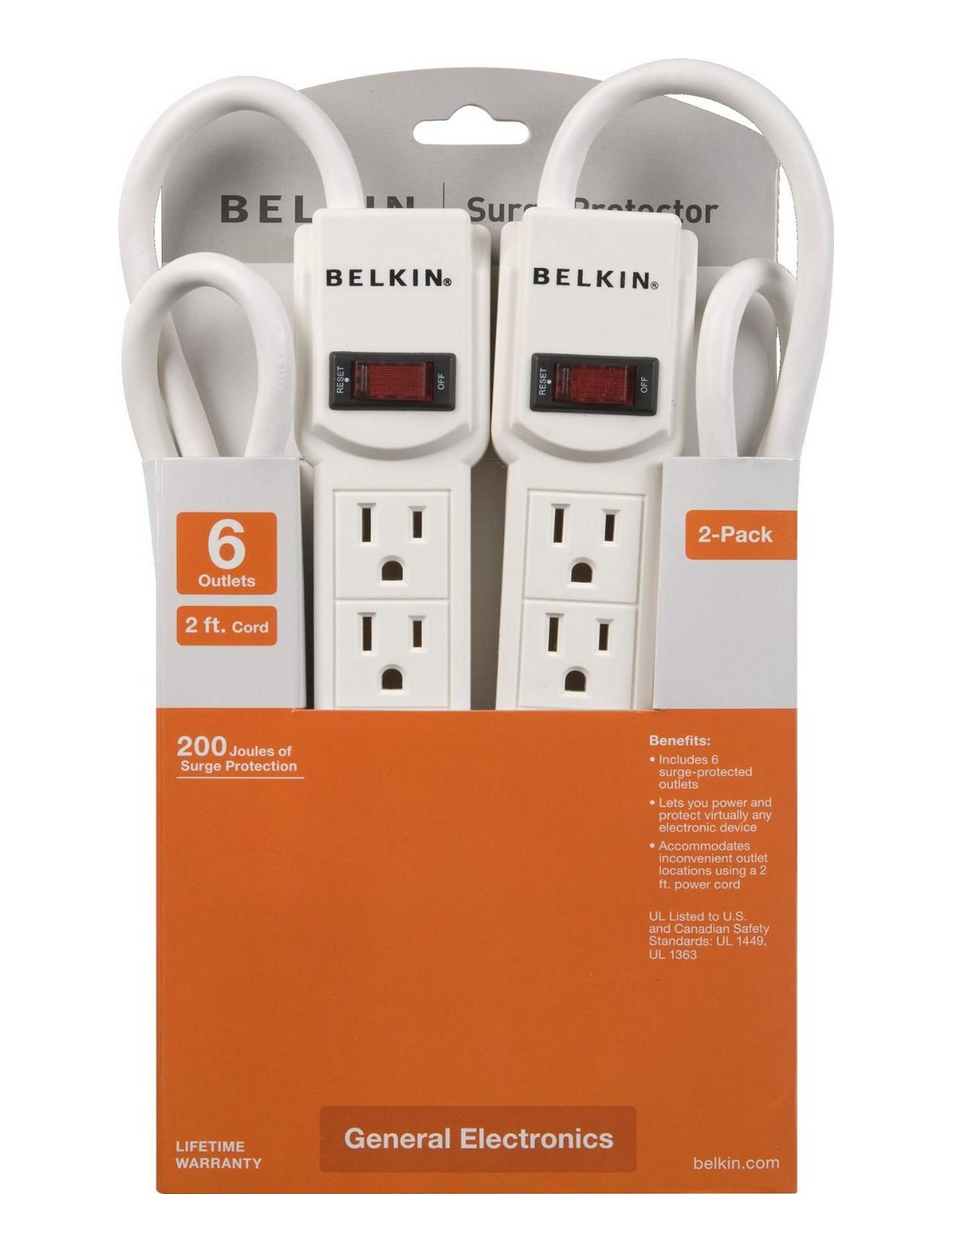 70% Off Best-Selling Belkin Surge Protectors – As Low As $8.99! (Today Only)